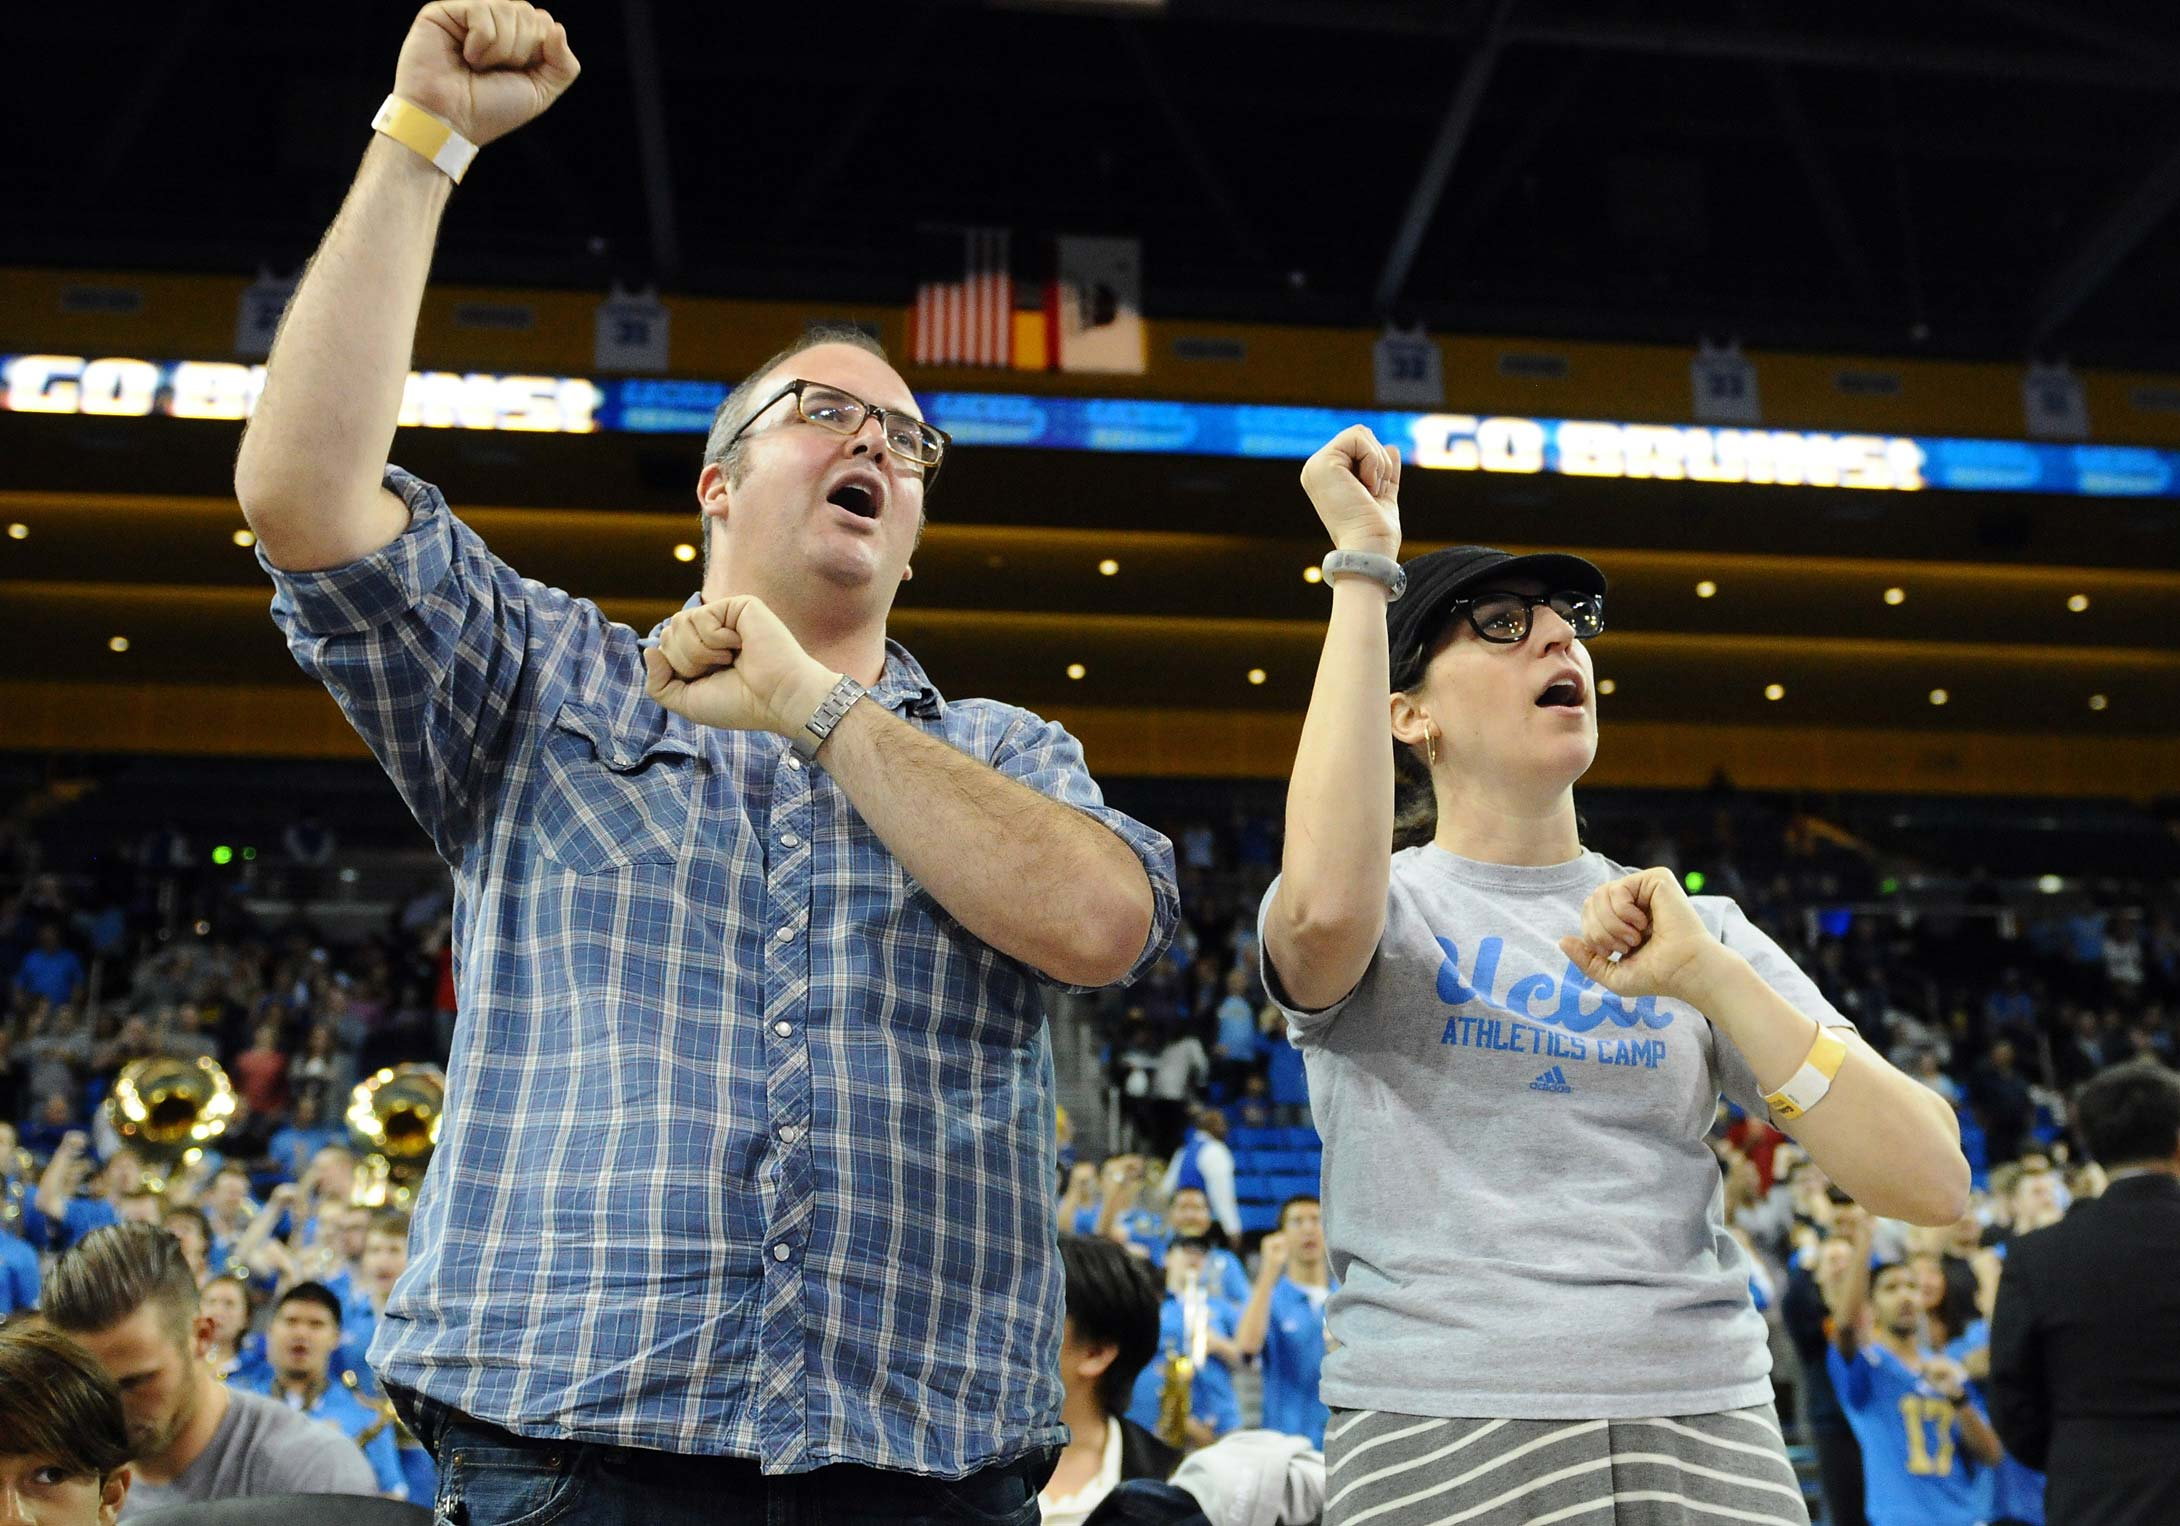 Mayim Bialik of the hit tv show The Big Bang Theory and her ex-husband Michael Stone during a 2014 game between Cal and UCLA at Pauley Pavilion in Los Angeles.